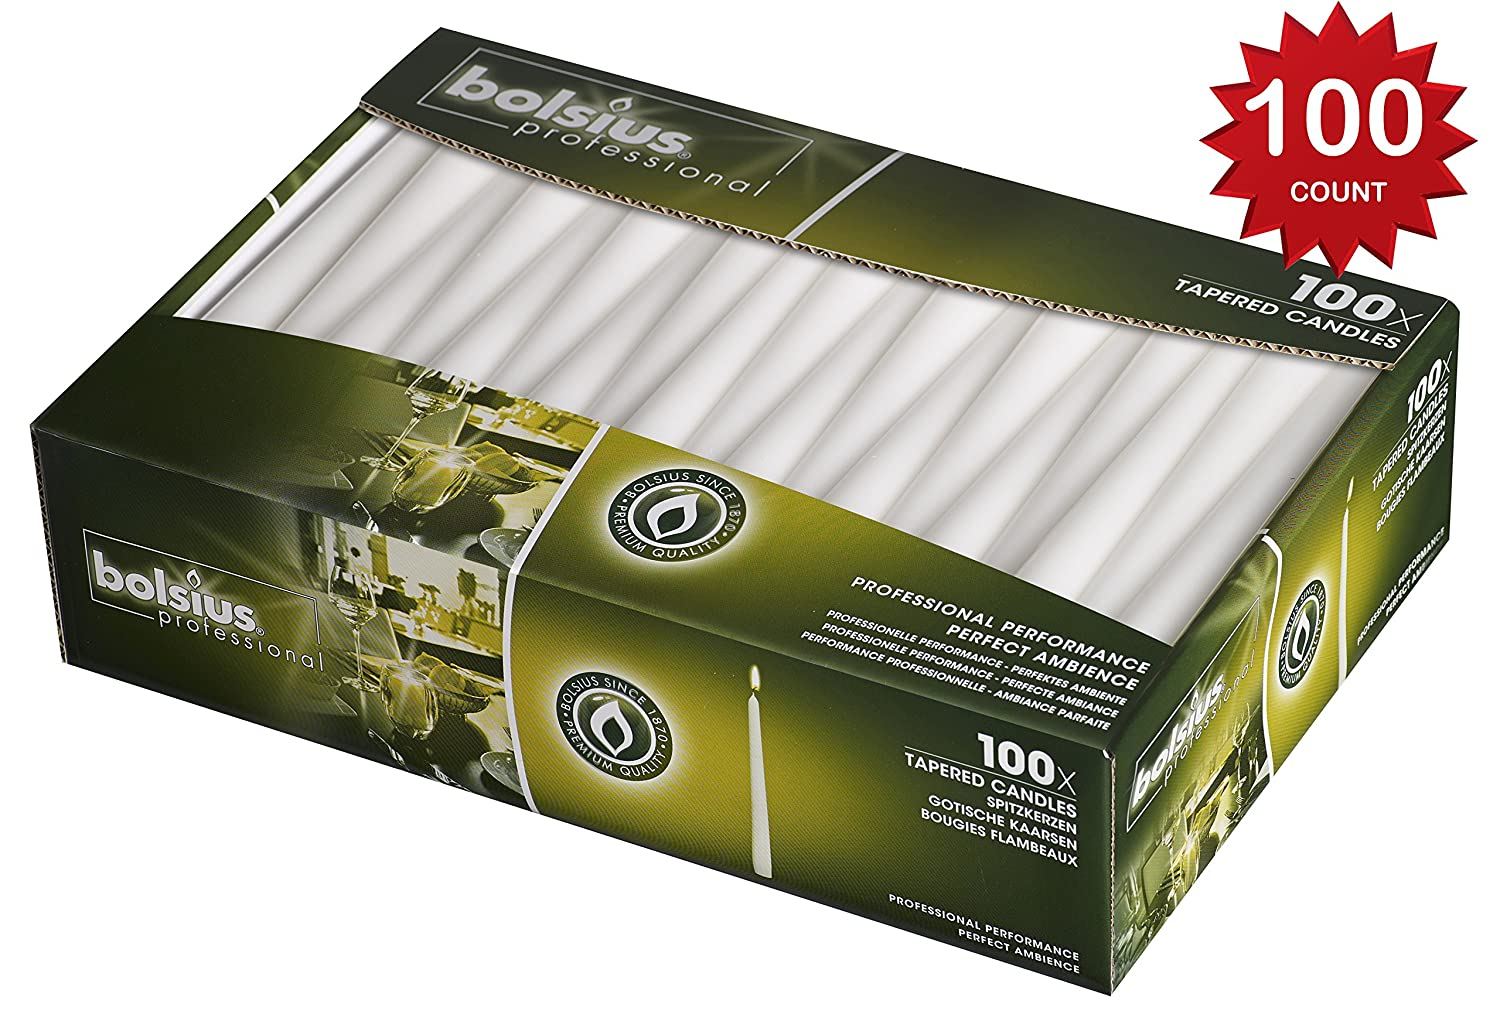 Taper 10inch Candles Color: White 100 count Bolsius P960